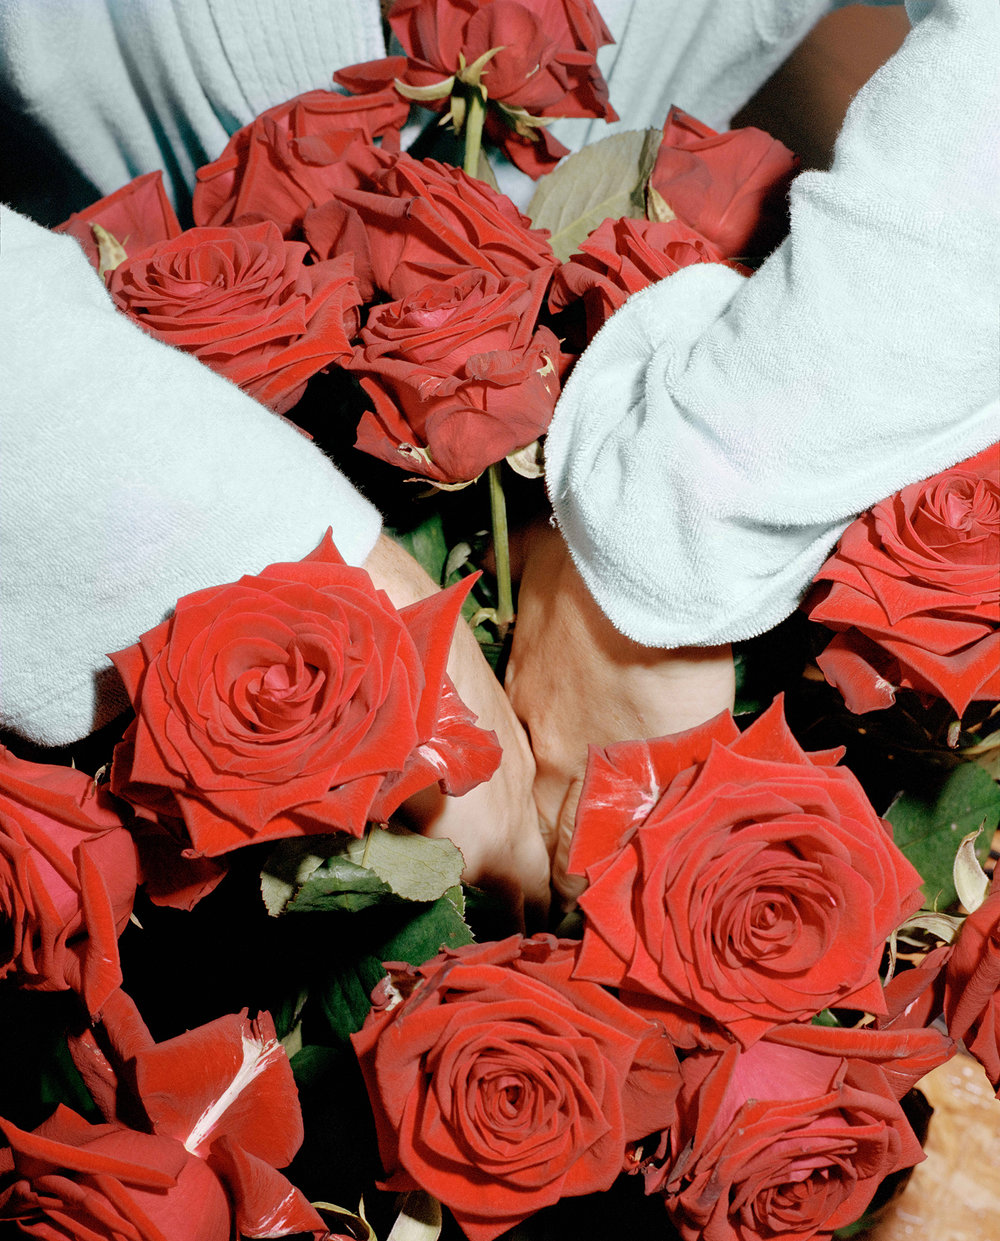 Hands_and_Roses_2017.jpg